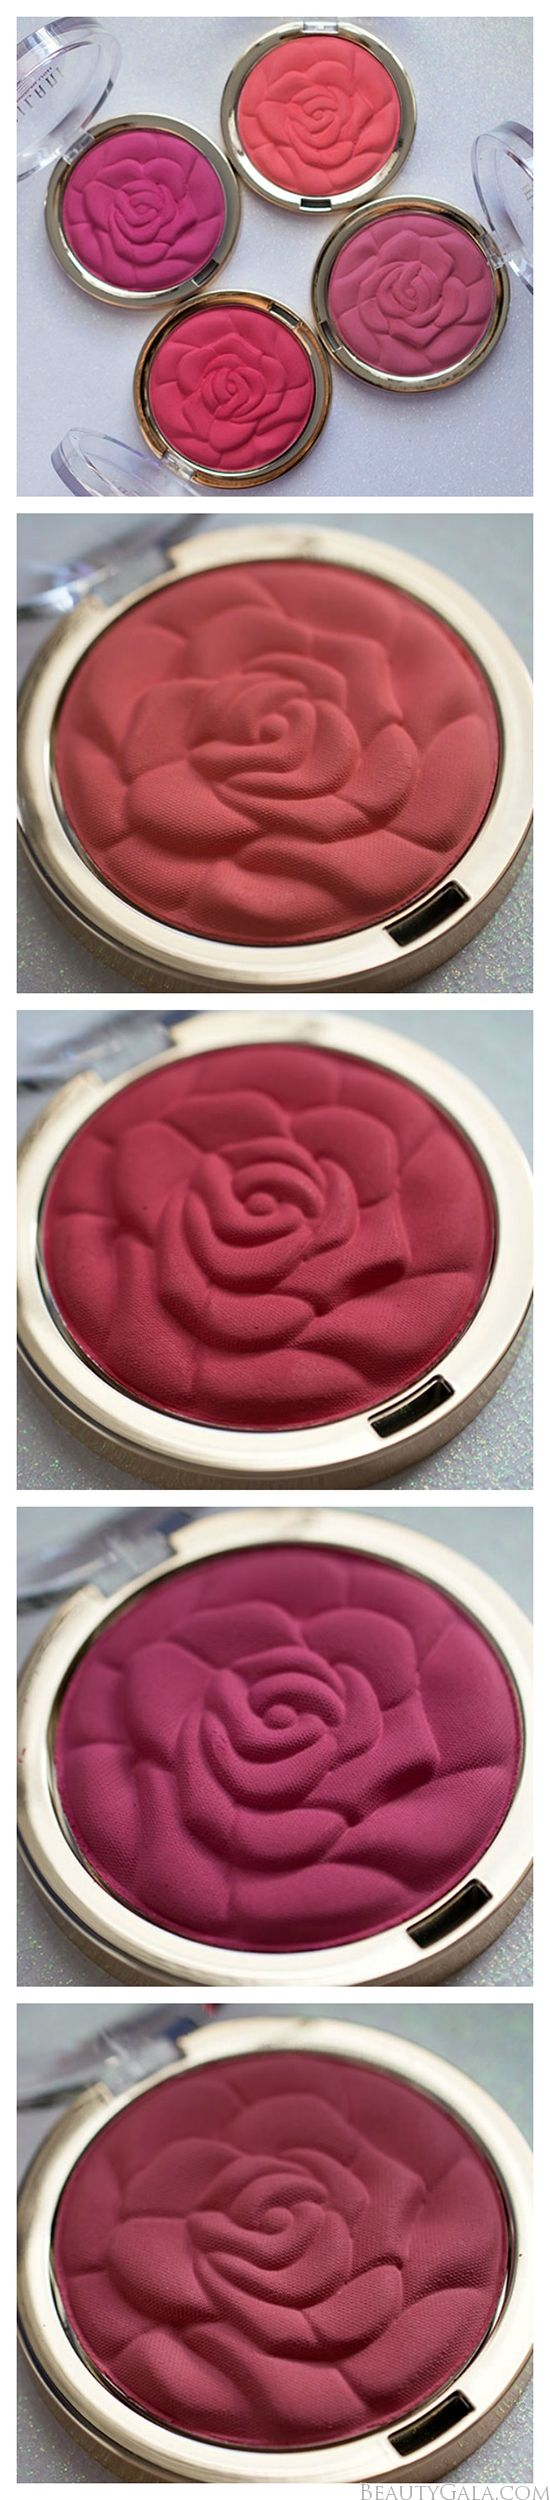 Milani Limited Edition Rose Powder Blushes, coming March 2014! @Sheila -- -- -- -- Milani Cosmetics